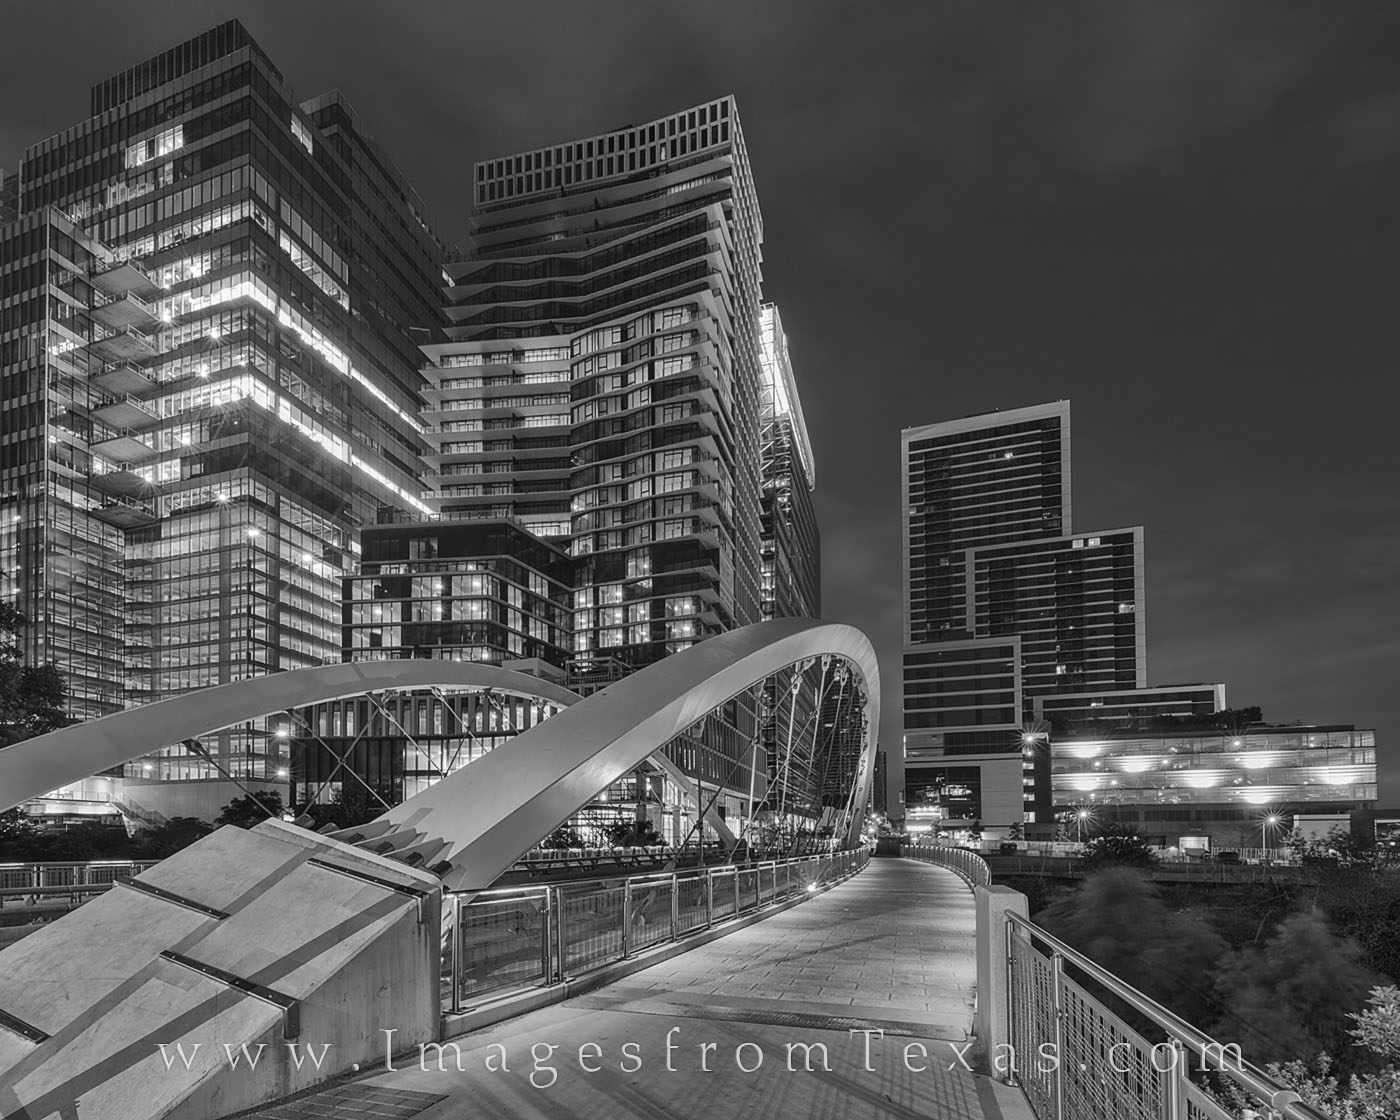 butterfly bridge, austin, downtown high rise, shoal creek, ladybird lake, 2nd street, morning, dark, bridge, pedestrian, photo